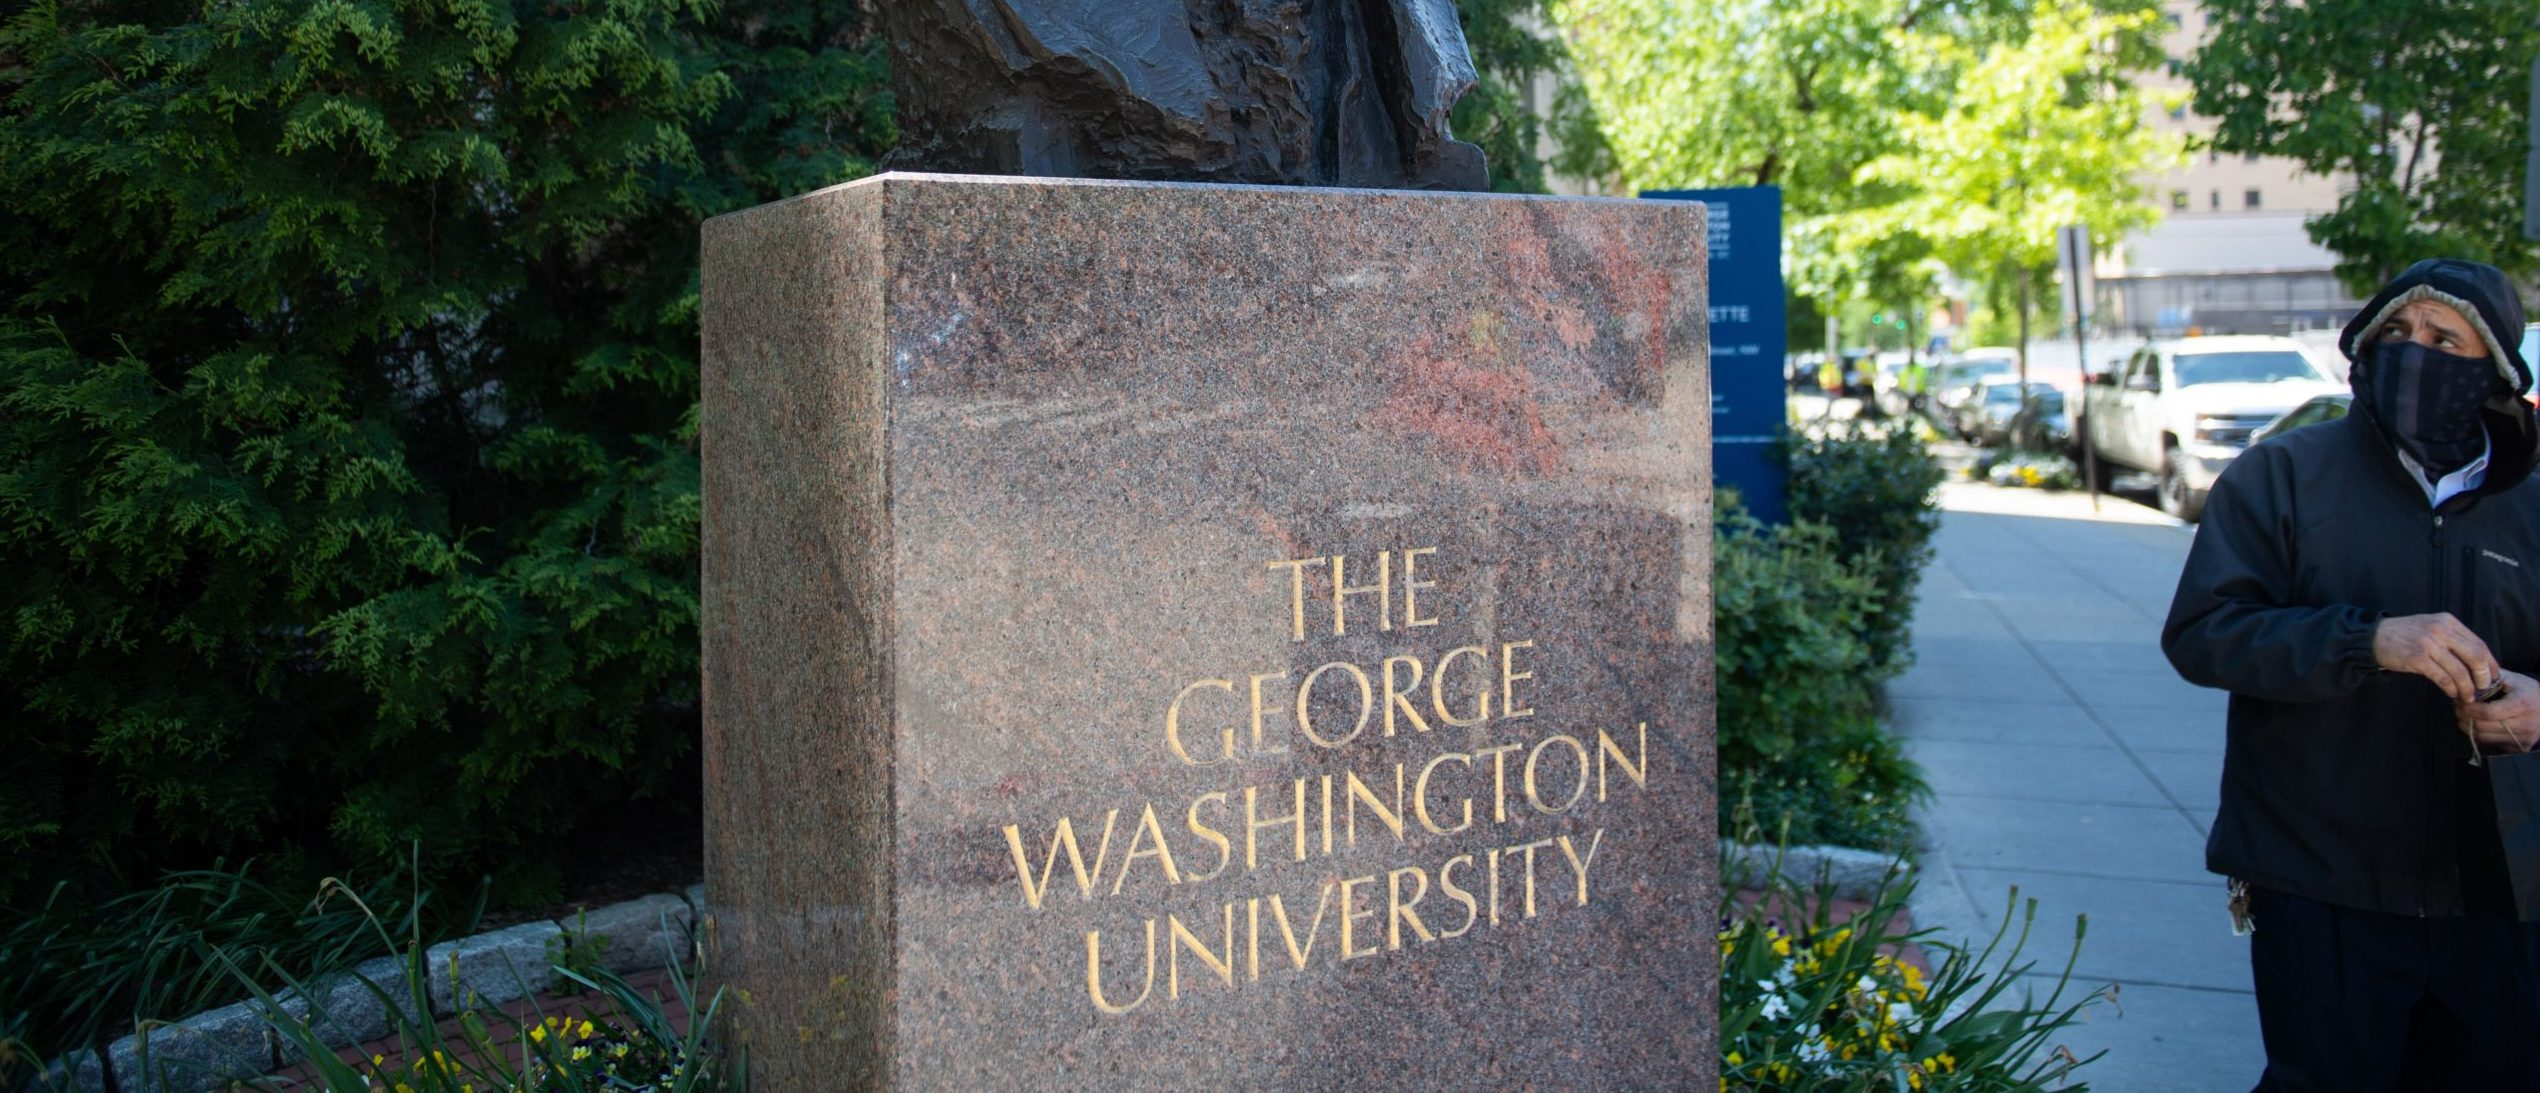 'Emotional Aftershocks': George Washington University Offers Mental Health Services To Cope With Election Results